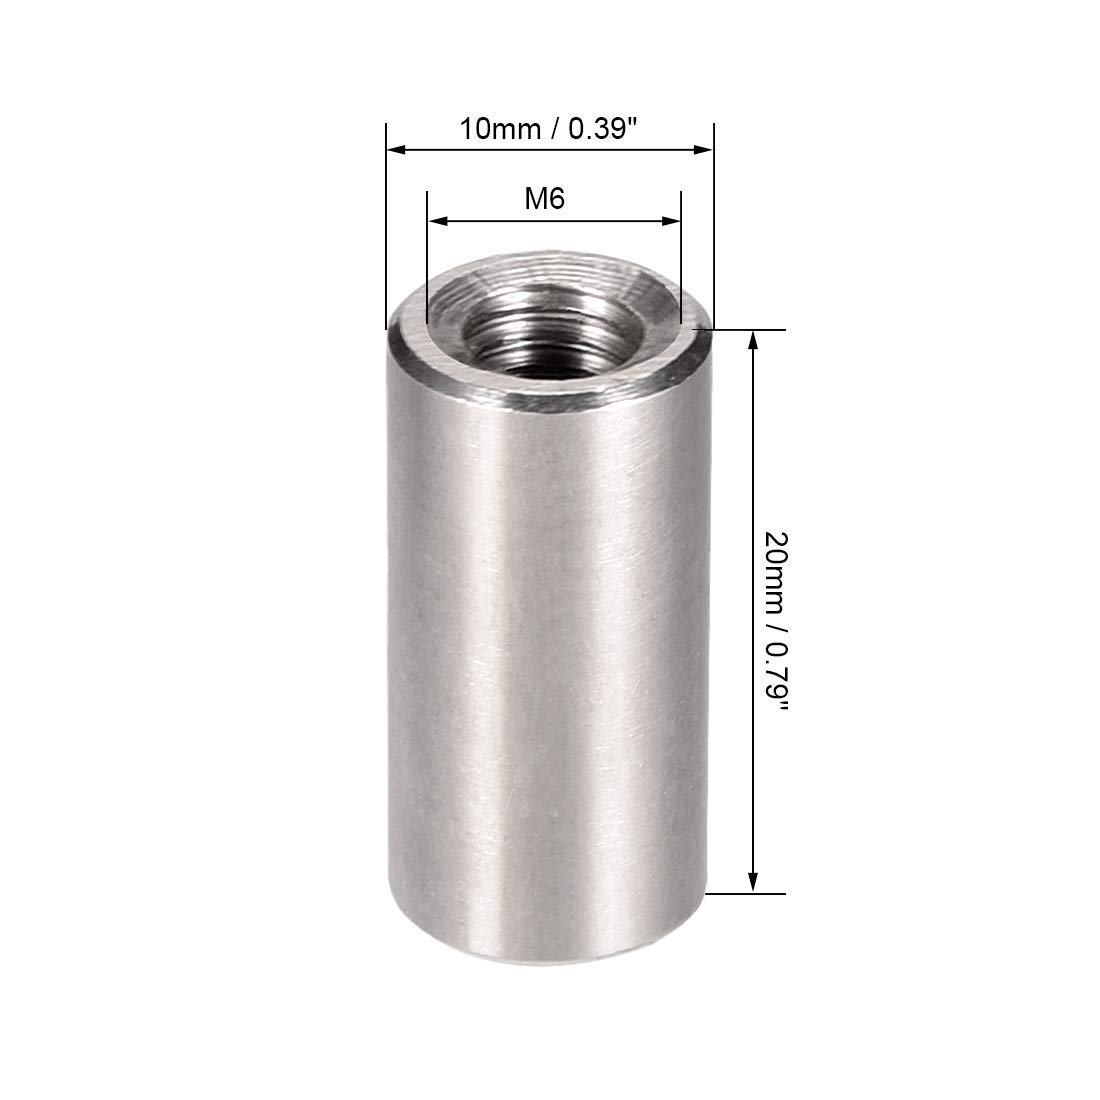 Round Connector Nuts M6x20mm Height Sleeve Bar Bar Nut 304 Stainless Steel Nut Pack of 10